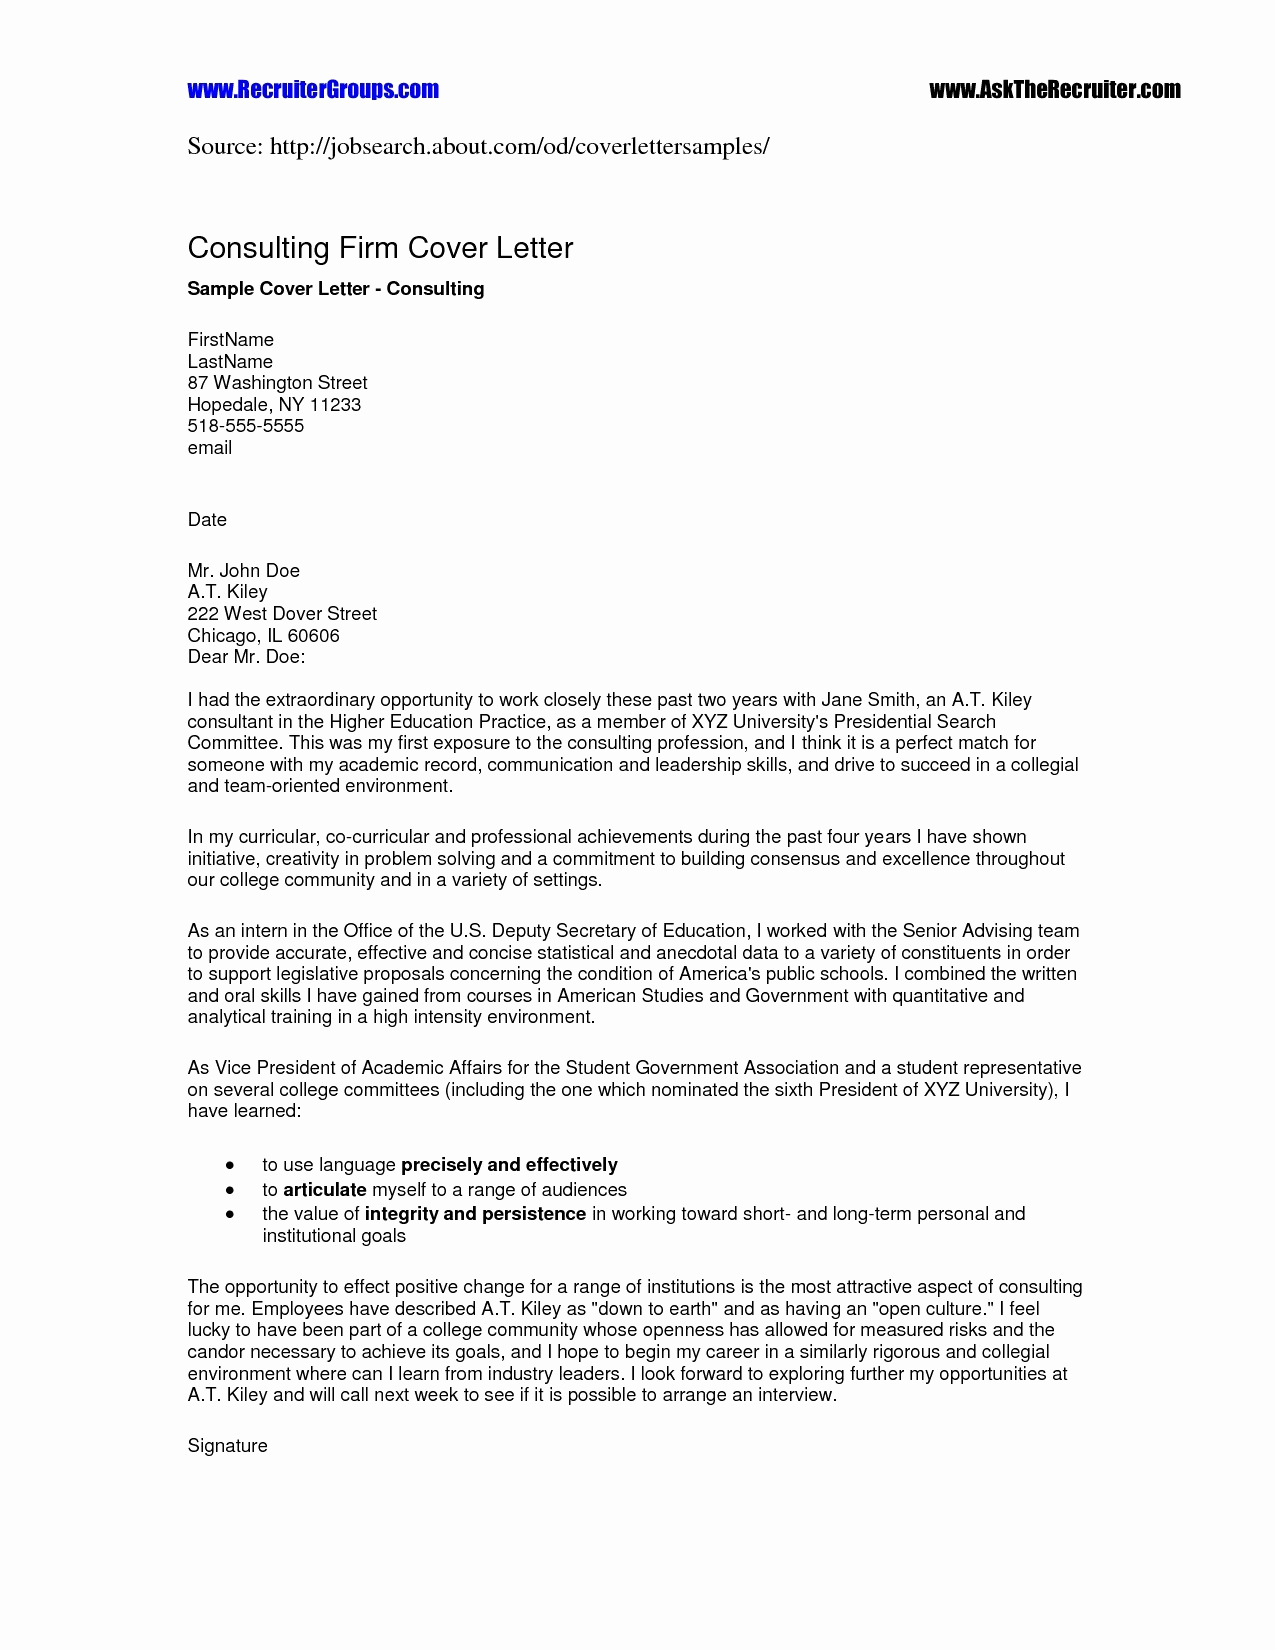 Police Officer Cover Letter Template - Police Ficer Cover Letters Beautiful Simple Resume Cover Letters